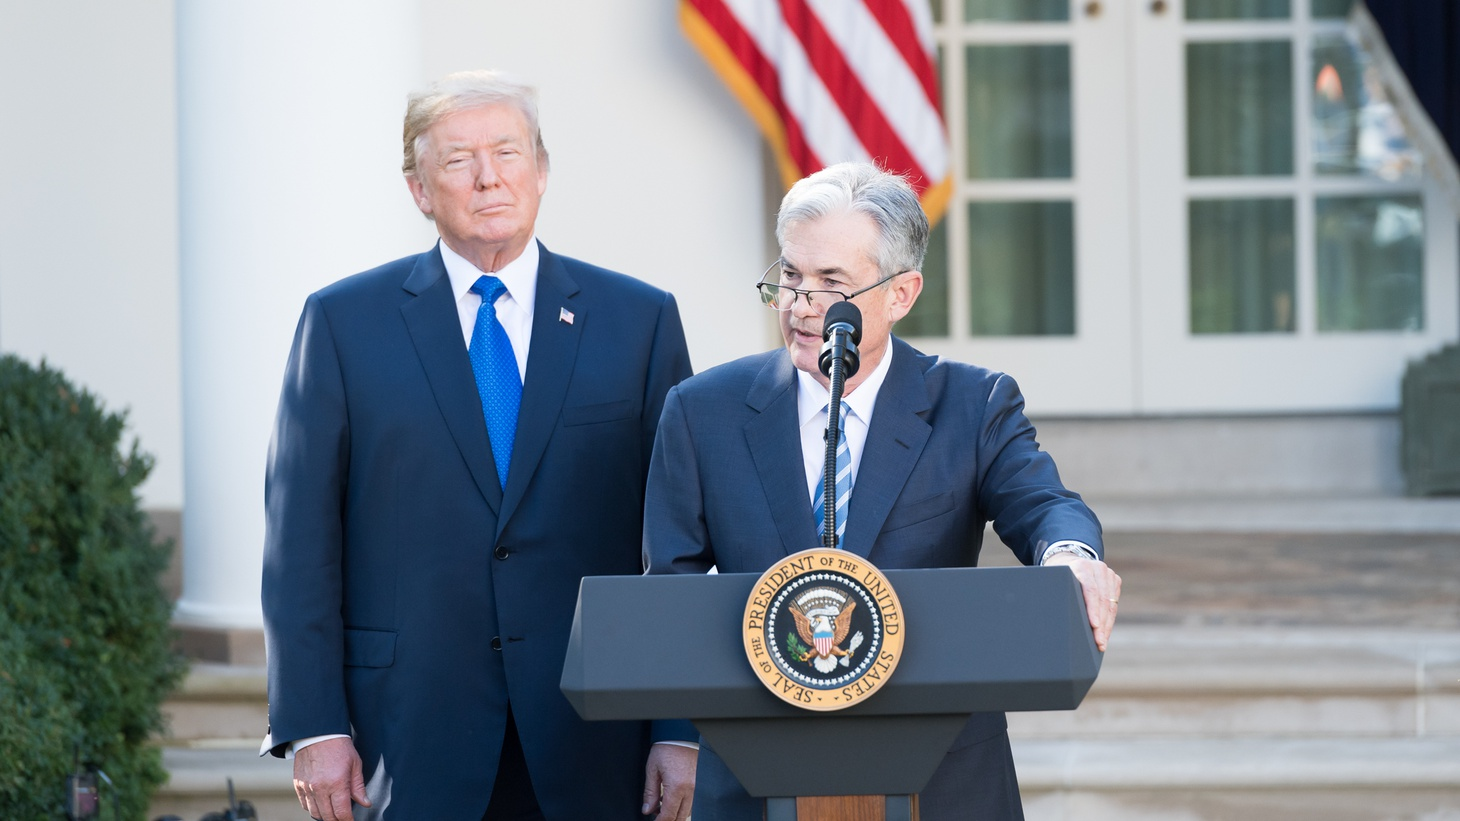 President Donald J. Trump announced the nomination of Jerome Powell to be Chairman of the Board of Governors of the Federal Reserve System, November 2, 2017.